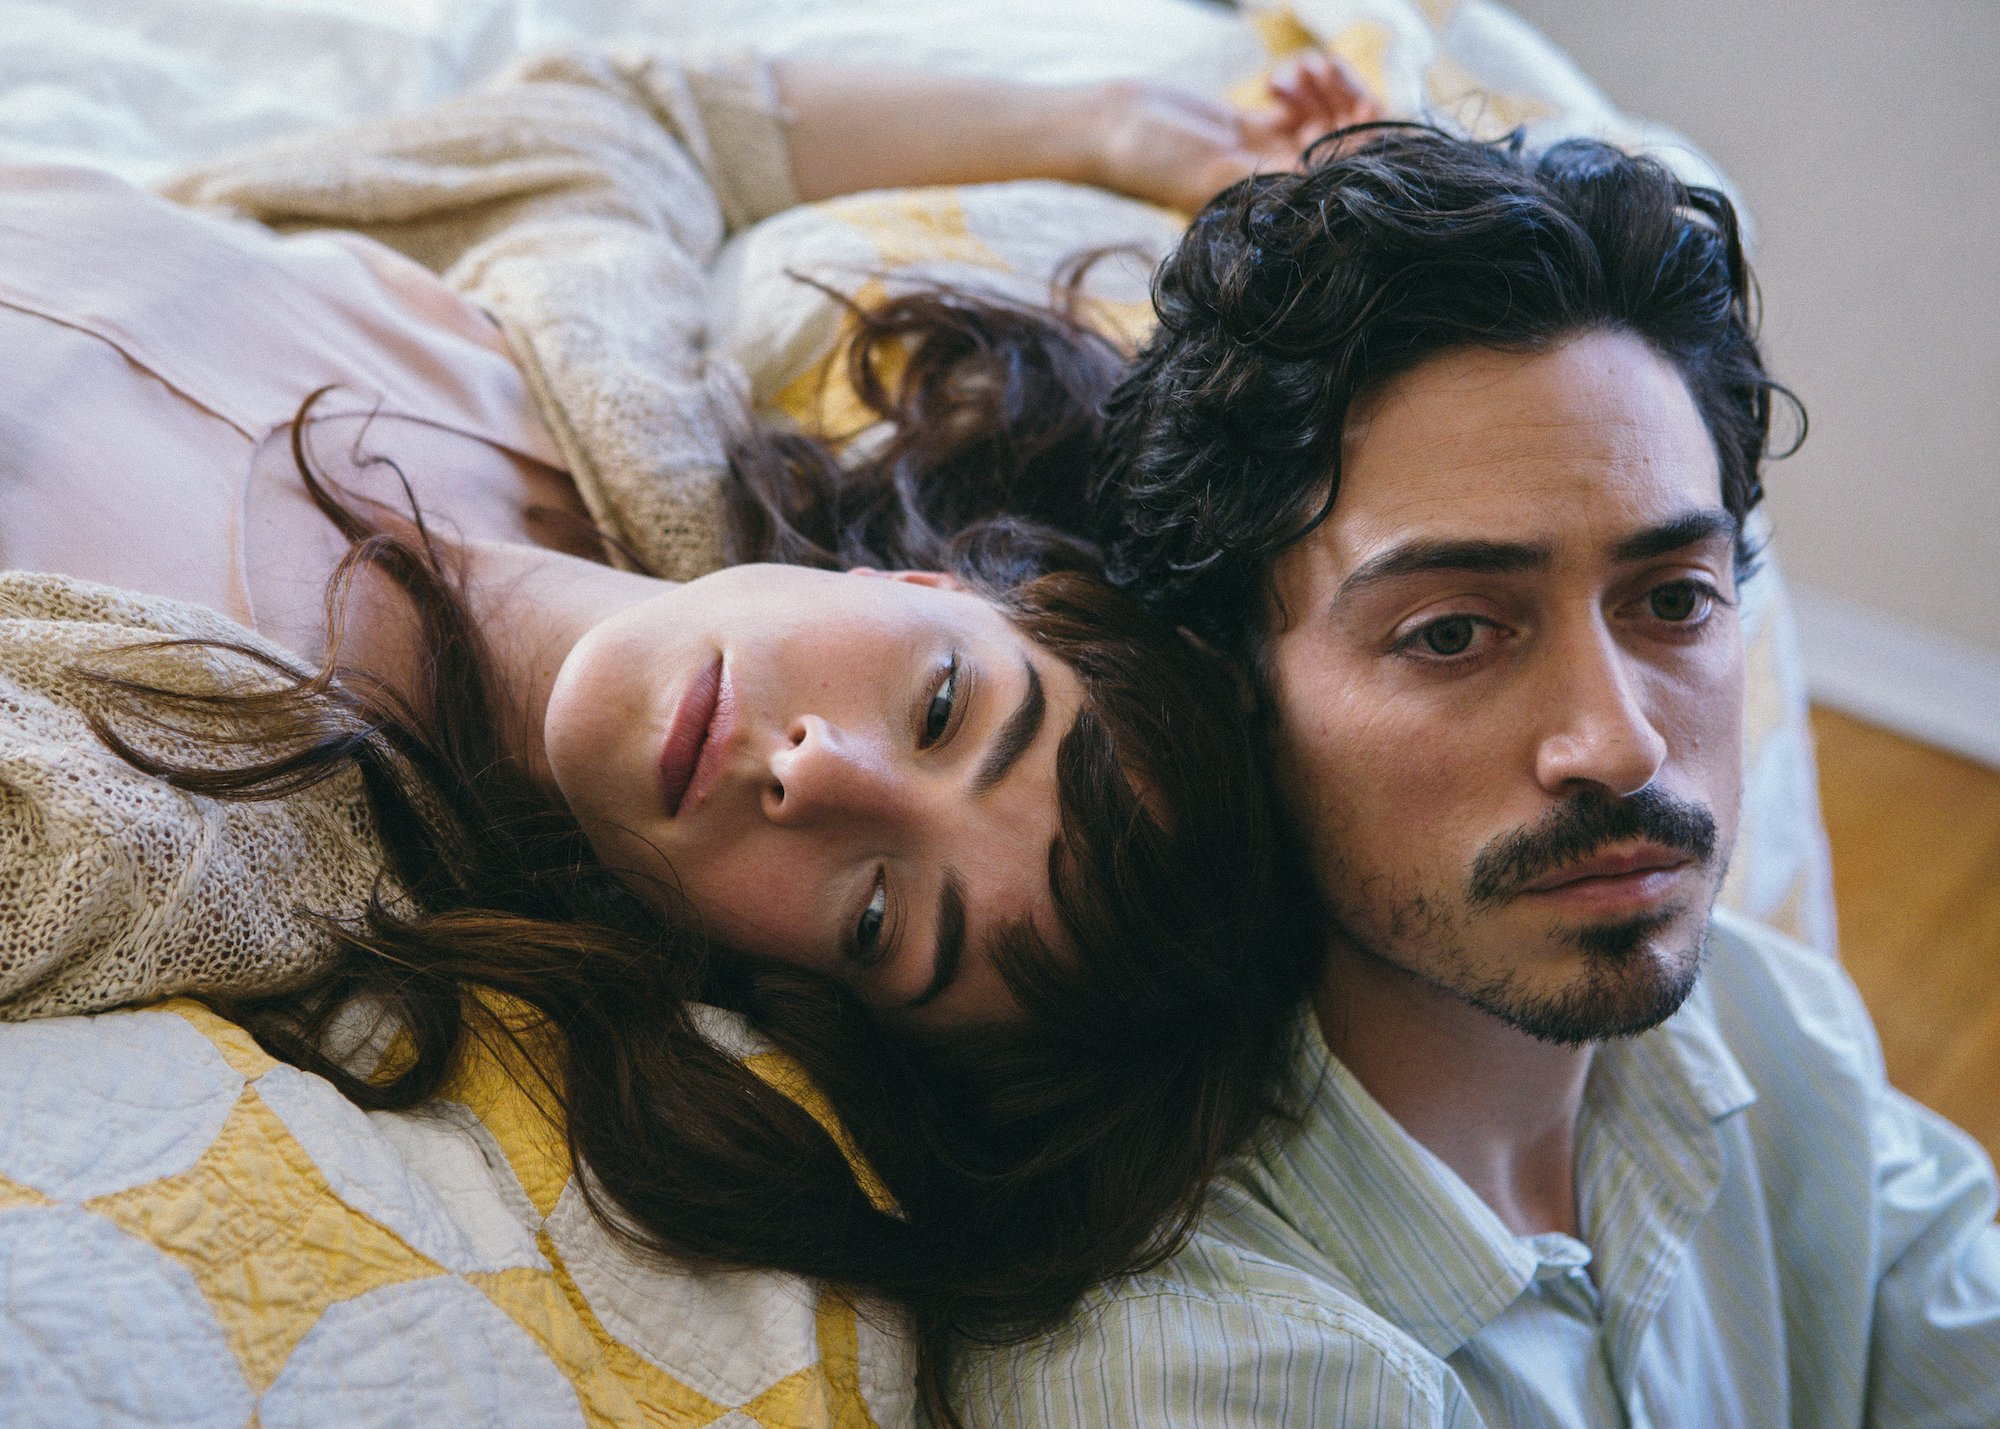 Filmmaker Rafael Palacio Illingworth on How He Wrote a Latino Character for 'Between Us' Without Even Realizing It